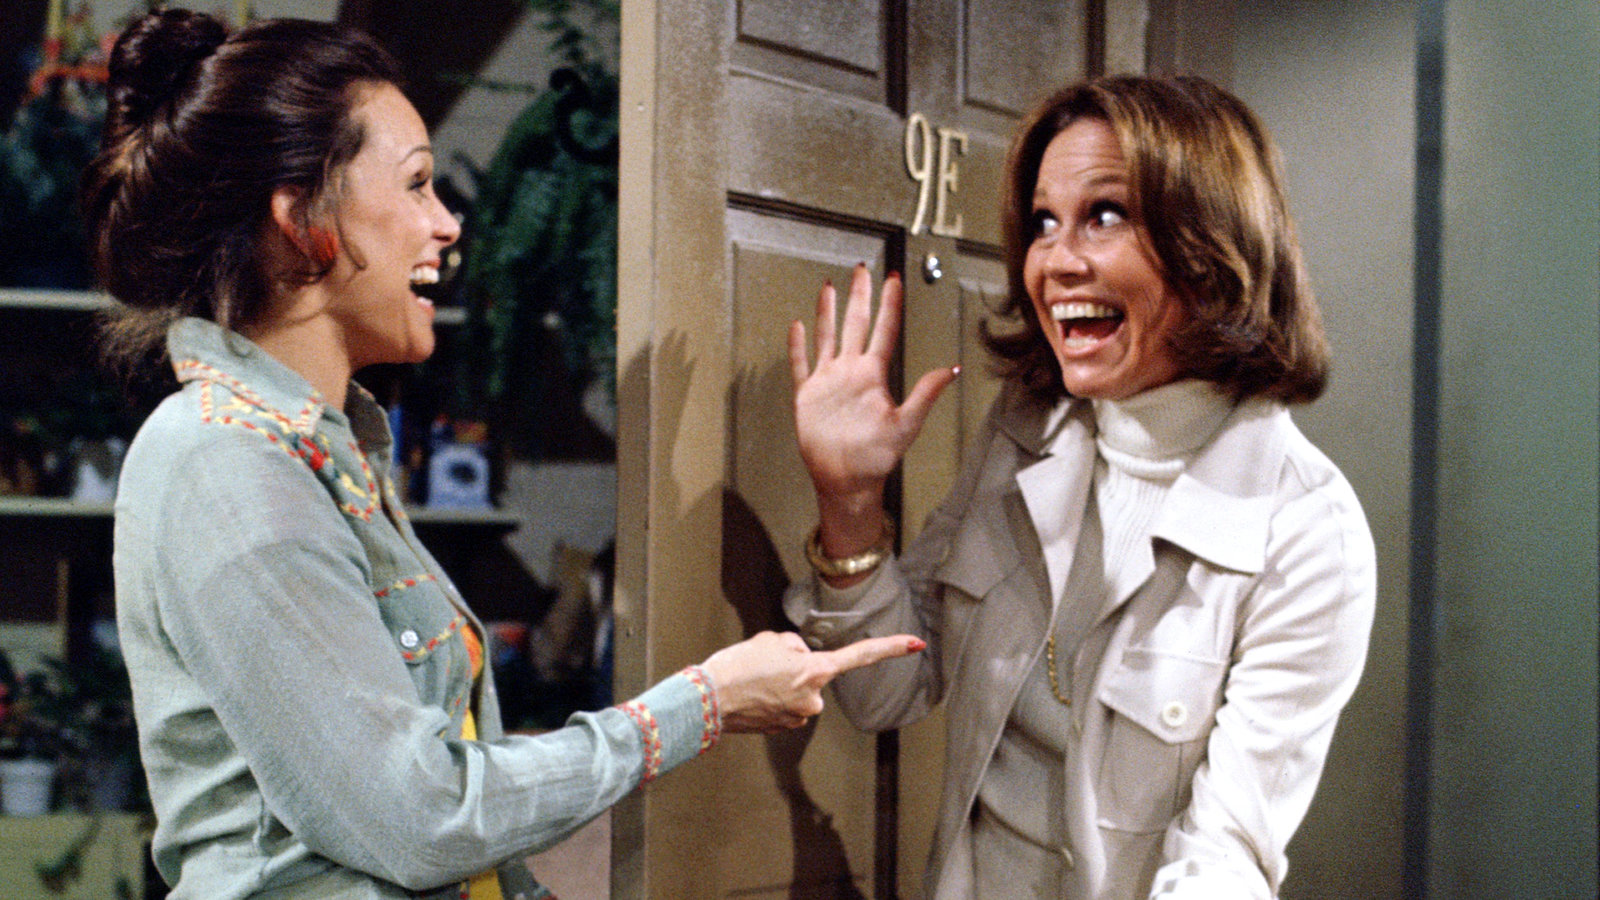 Metv And Decades Tv Will Pay Tribute To Valerie Harper Cord Cutters News